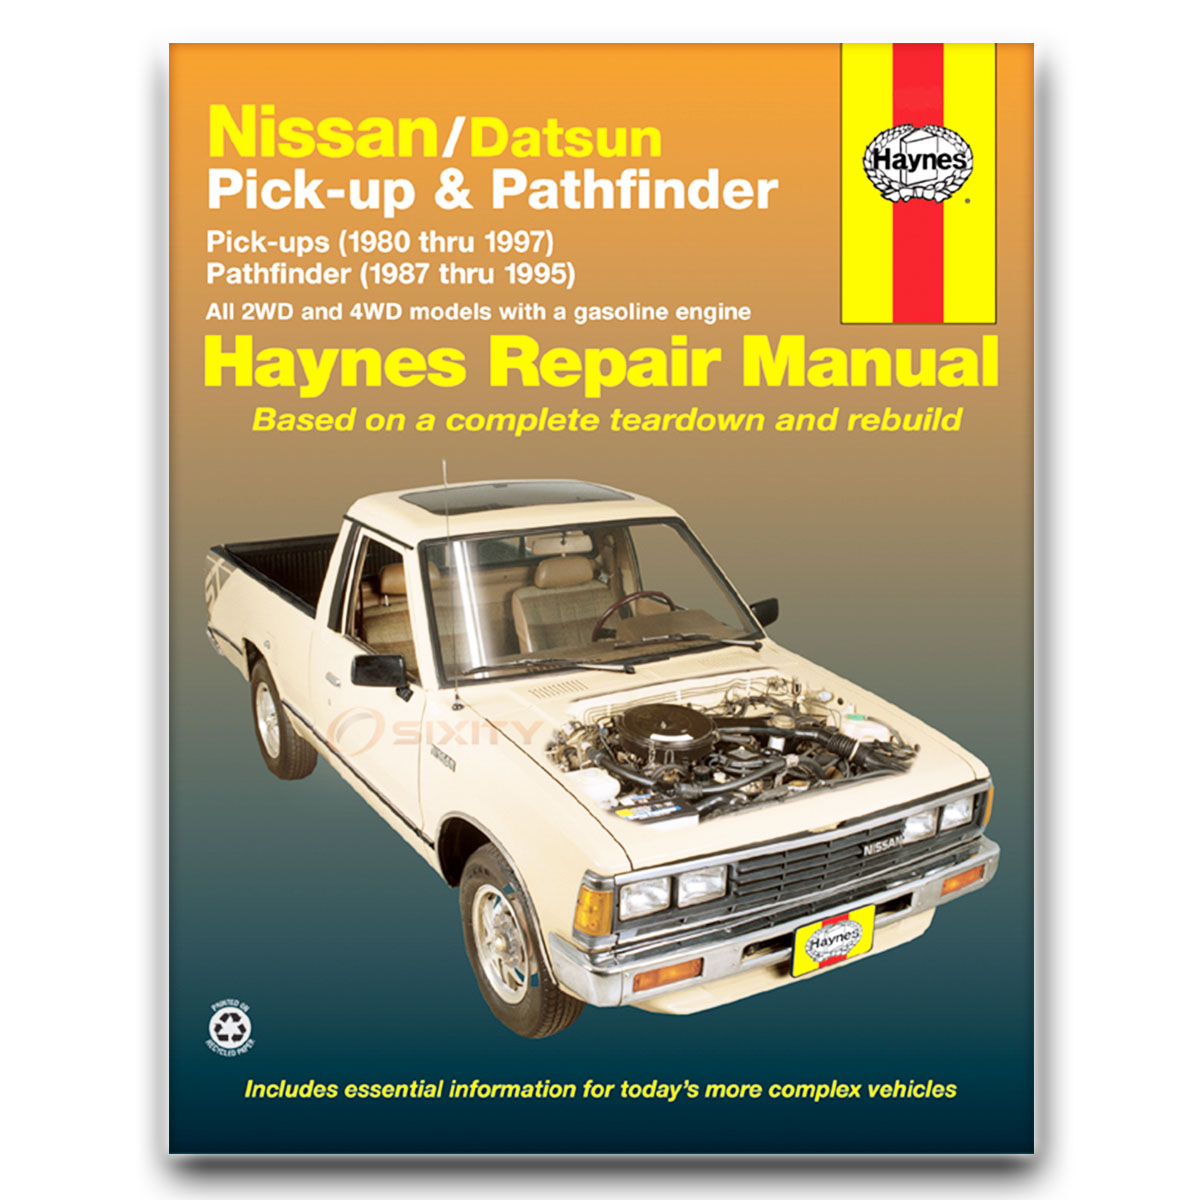 Haynes Repair Manual for Nissan Pickup XE Base SE Shop Service Garage Book  kj